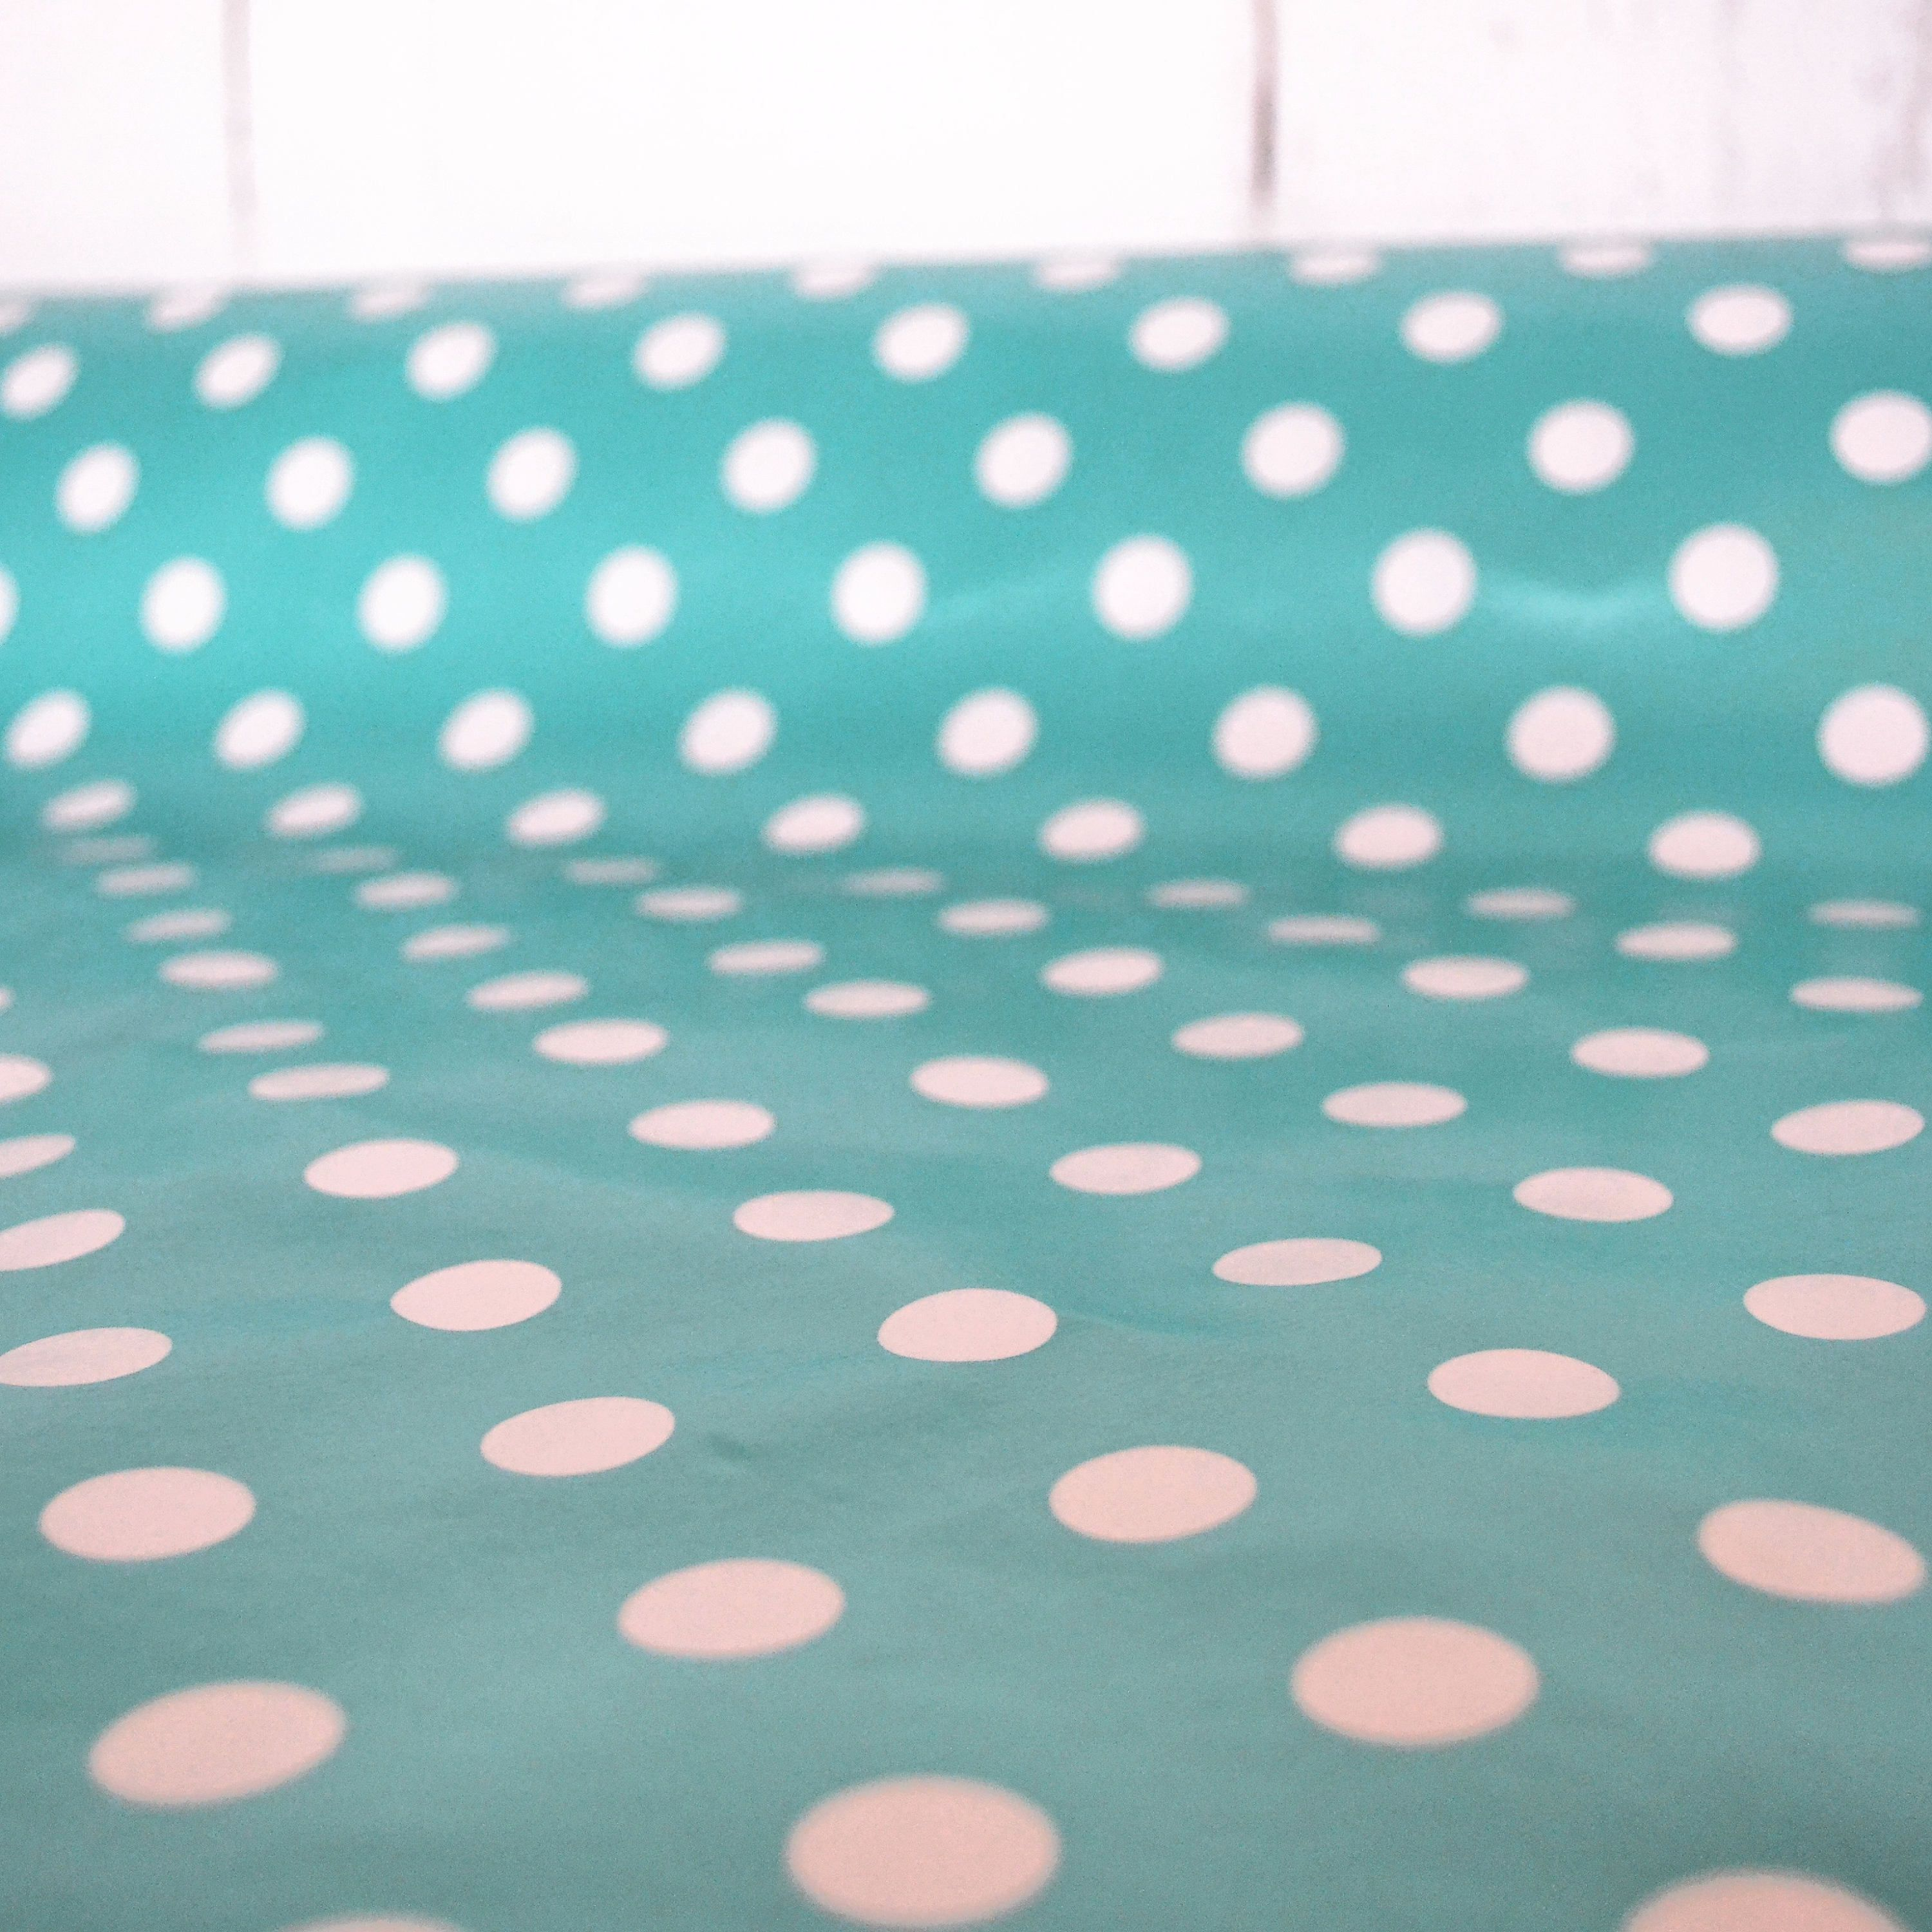 Wipe Clean Tablecloth Fabric, Teal Oilcloth Tablecloth, Waterproof  Tablecloth, Vintage Tablecloth, Washcloth